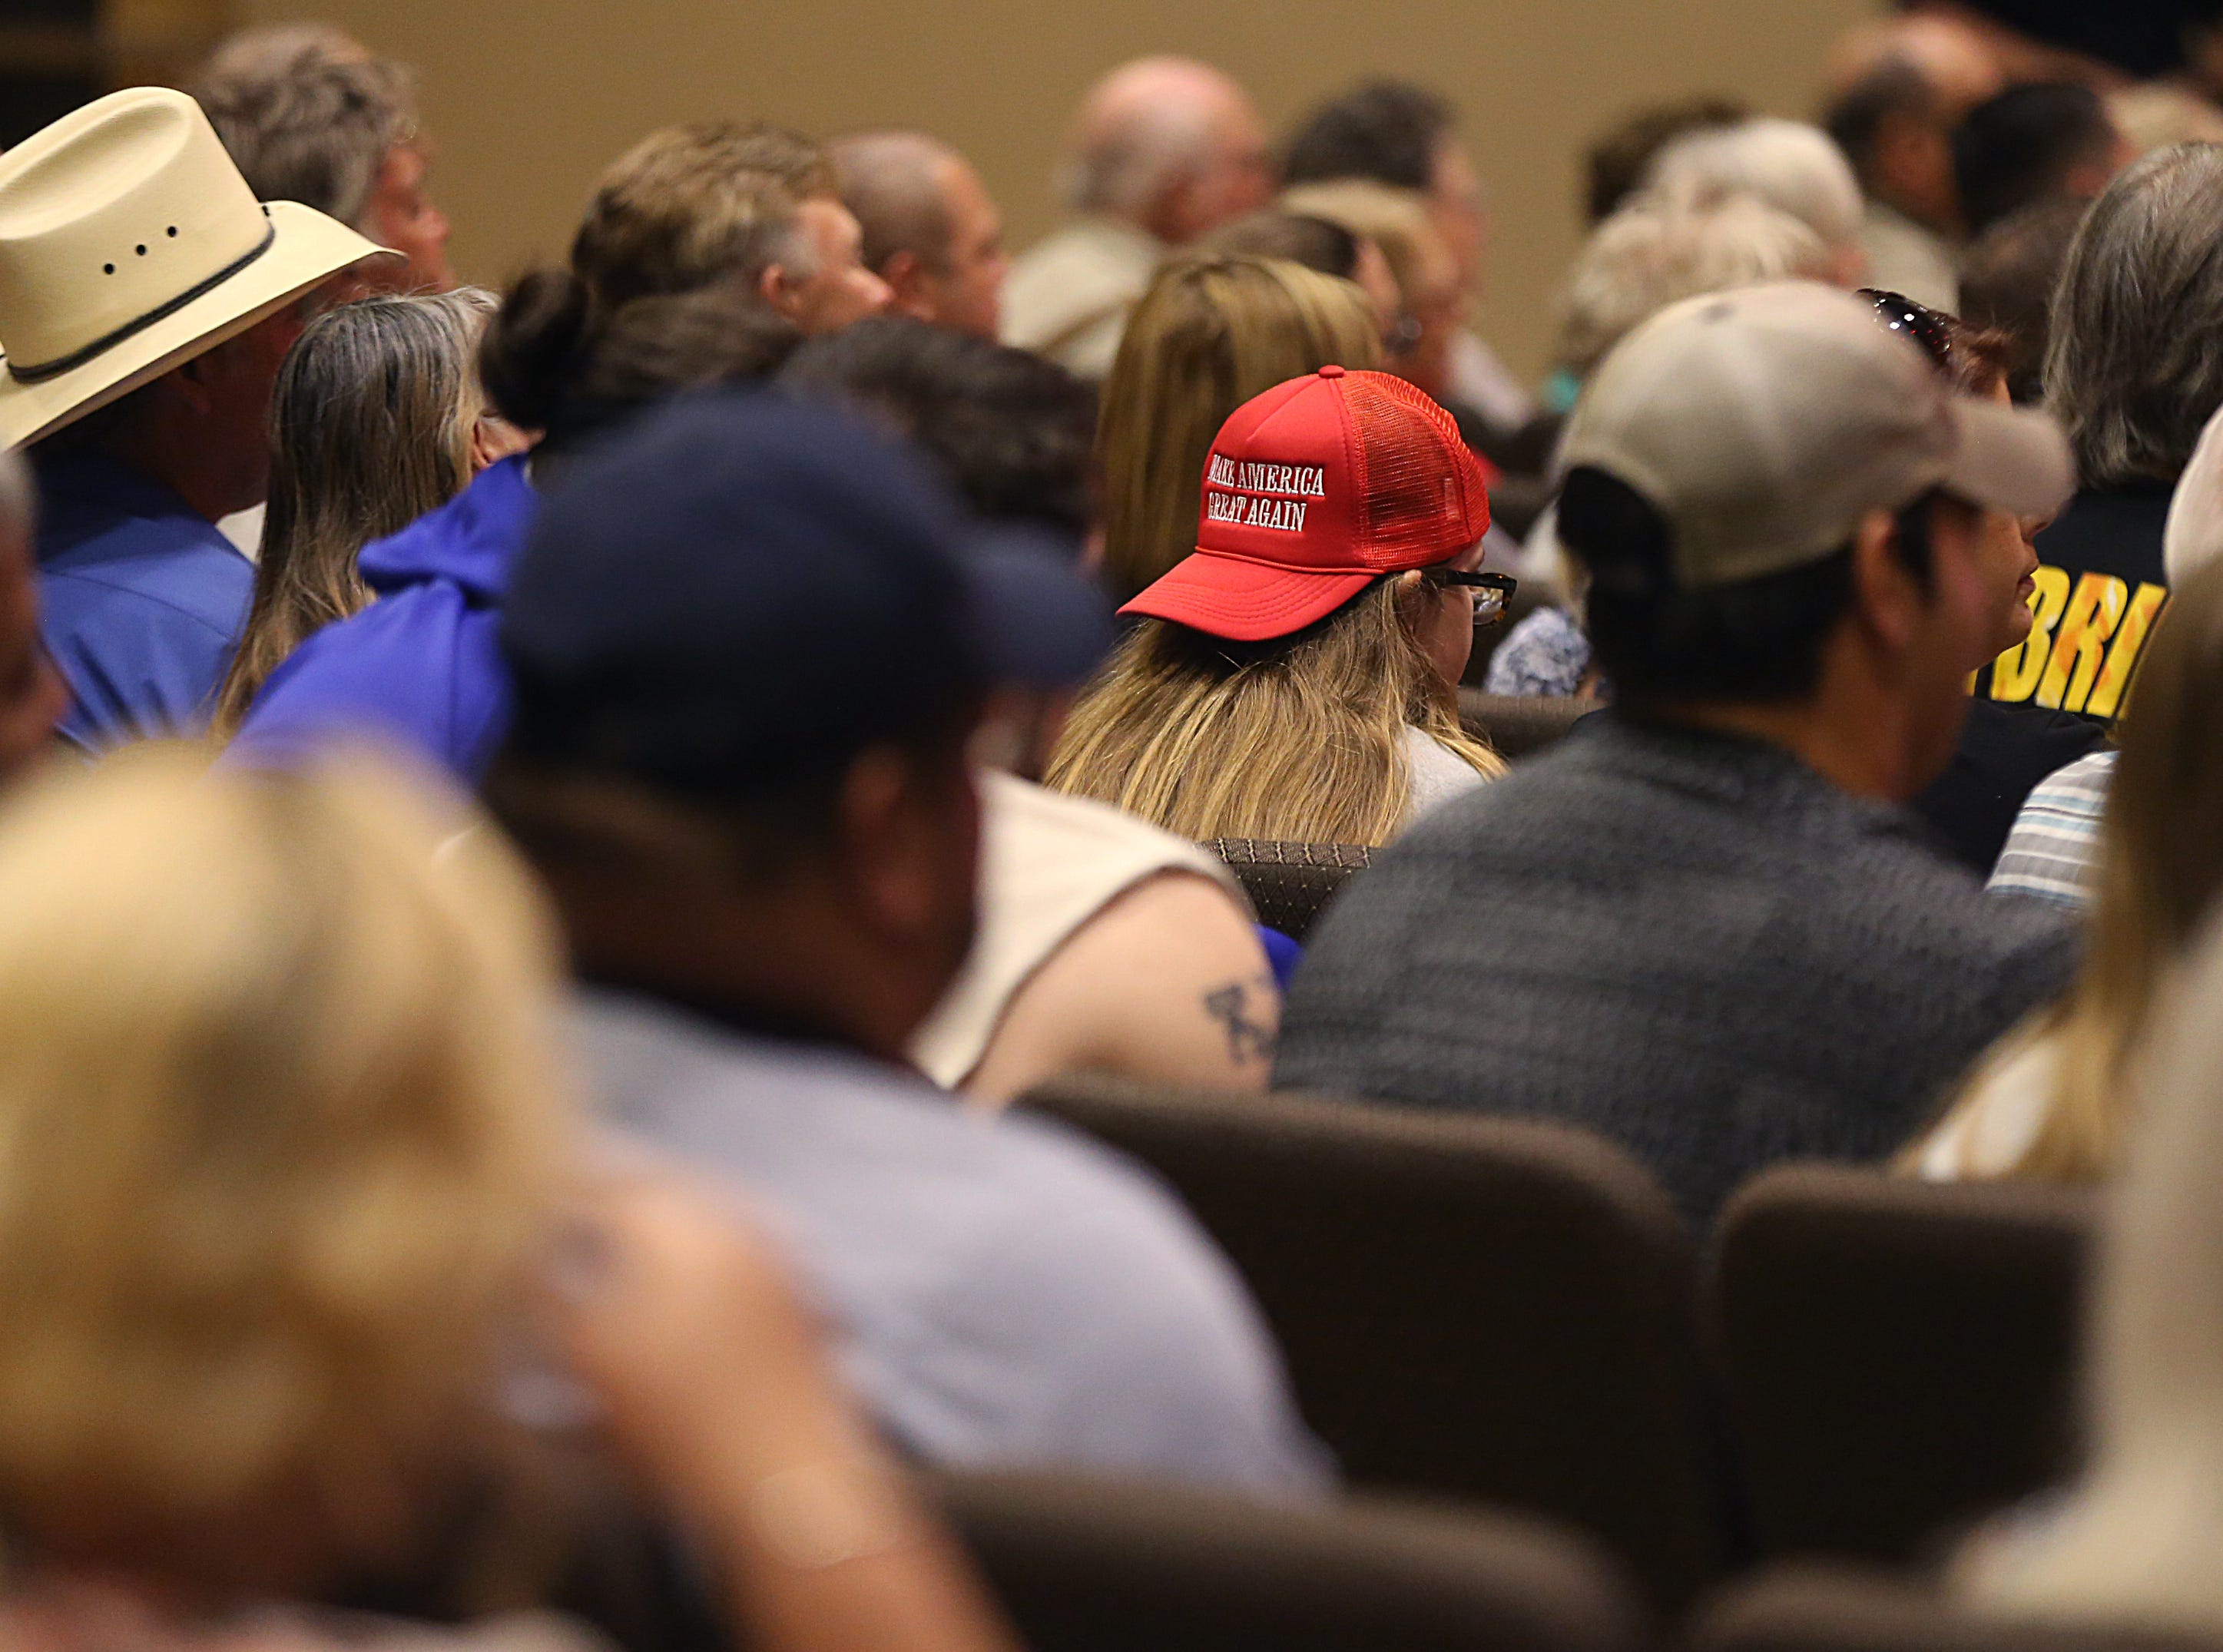 A supporter of Sen. Ted Cruz wears a Make America Great Again cap Tuesday, Oct. 30, 2018, at a speaking event at The Life Church in San Angelo.